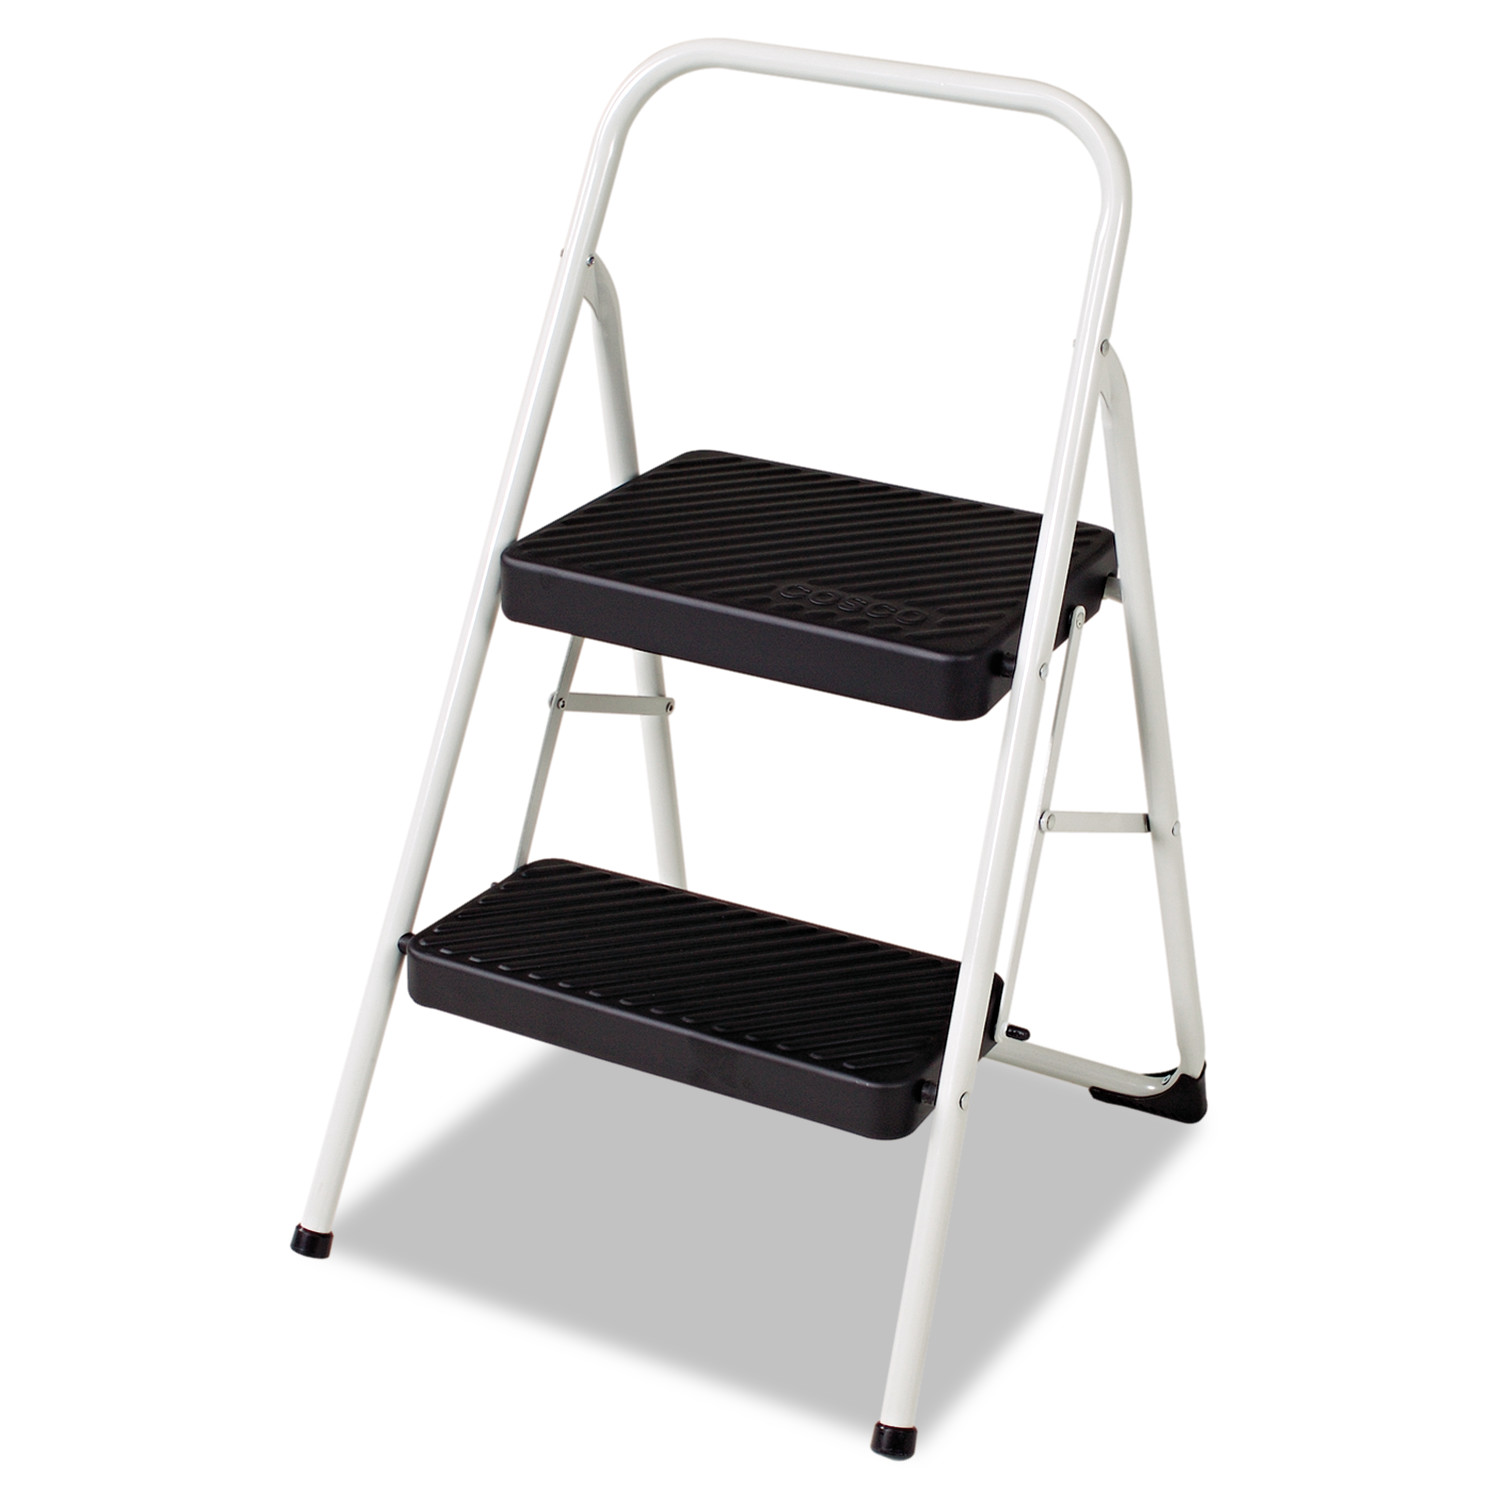 Cosco 2-Step Folding Steel Step Stool 200lbs 17 3/8w x 18d x 28 1/8h Cool Gray - Walmart.com  sc 1 st  Walmart & Cosco 2-Step Folding Steel Step Stool 200lbs 17 3/8w x 18d x 28 ... islam-shia.org